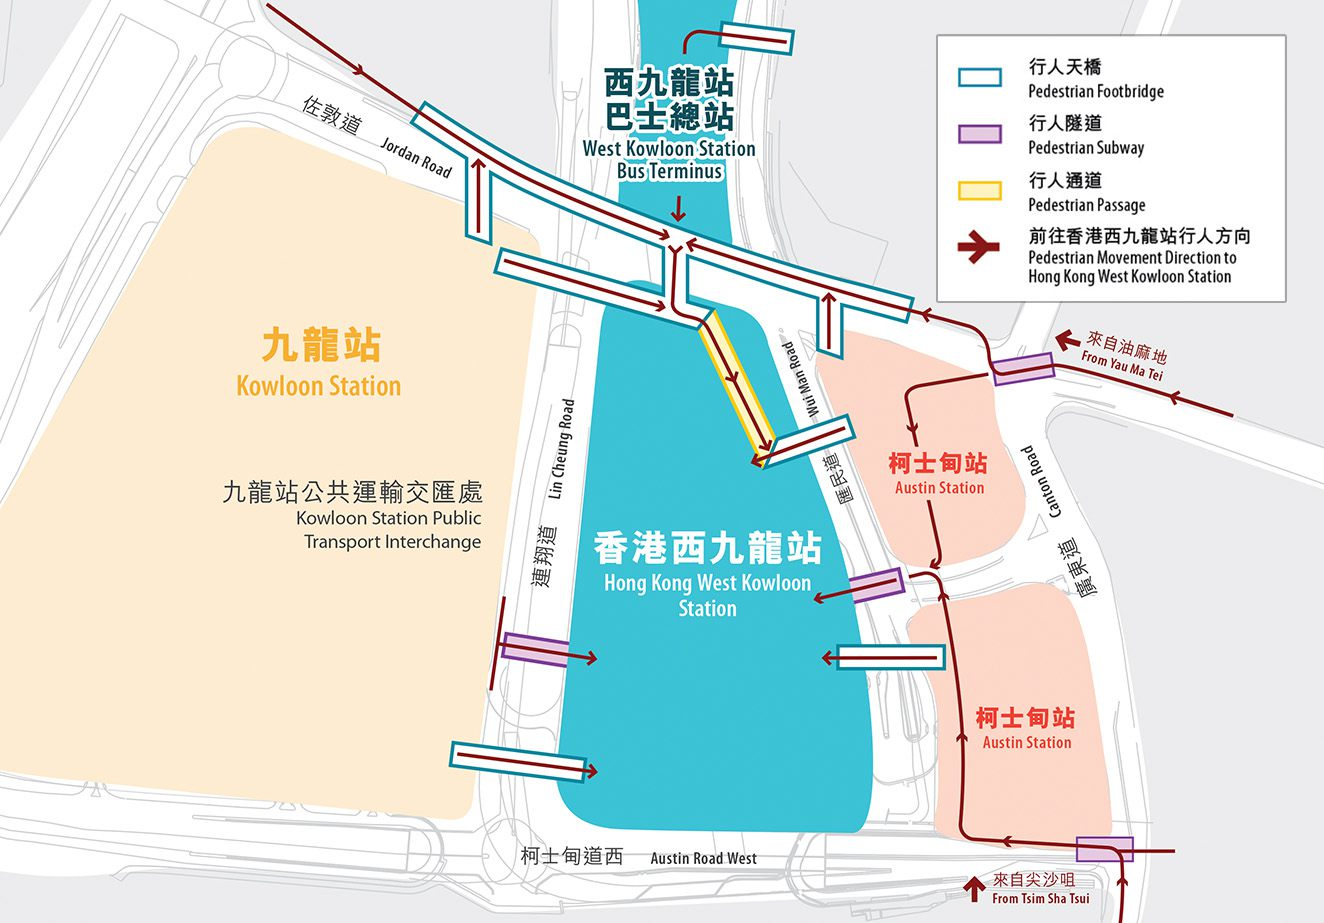 Pedestrian facilities map to Hong Kong West Kowloon Railway Station Hong Kong from Kowloon metro station and Austin Metro Station